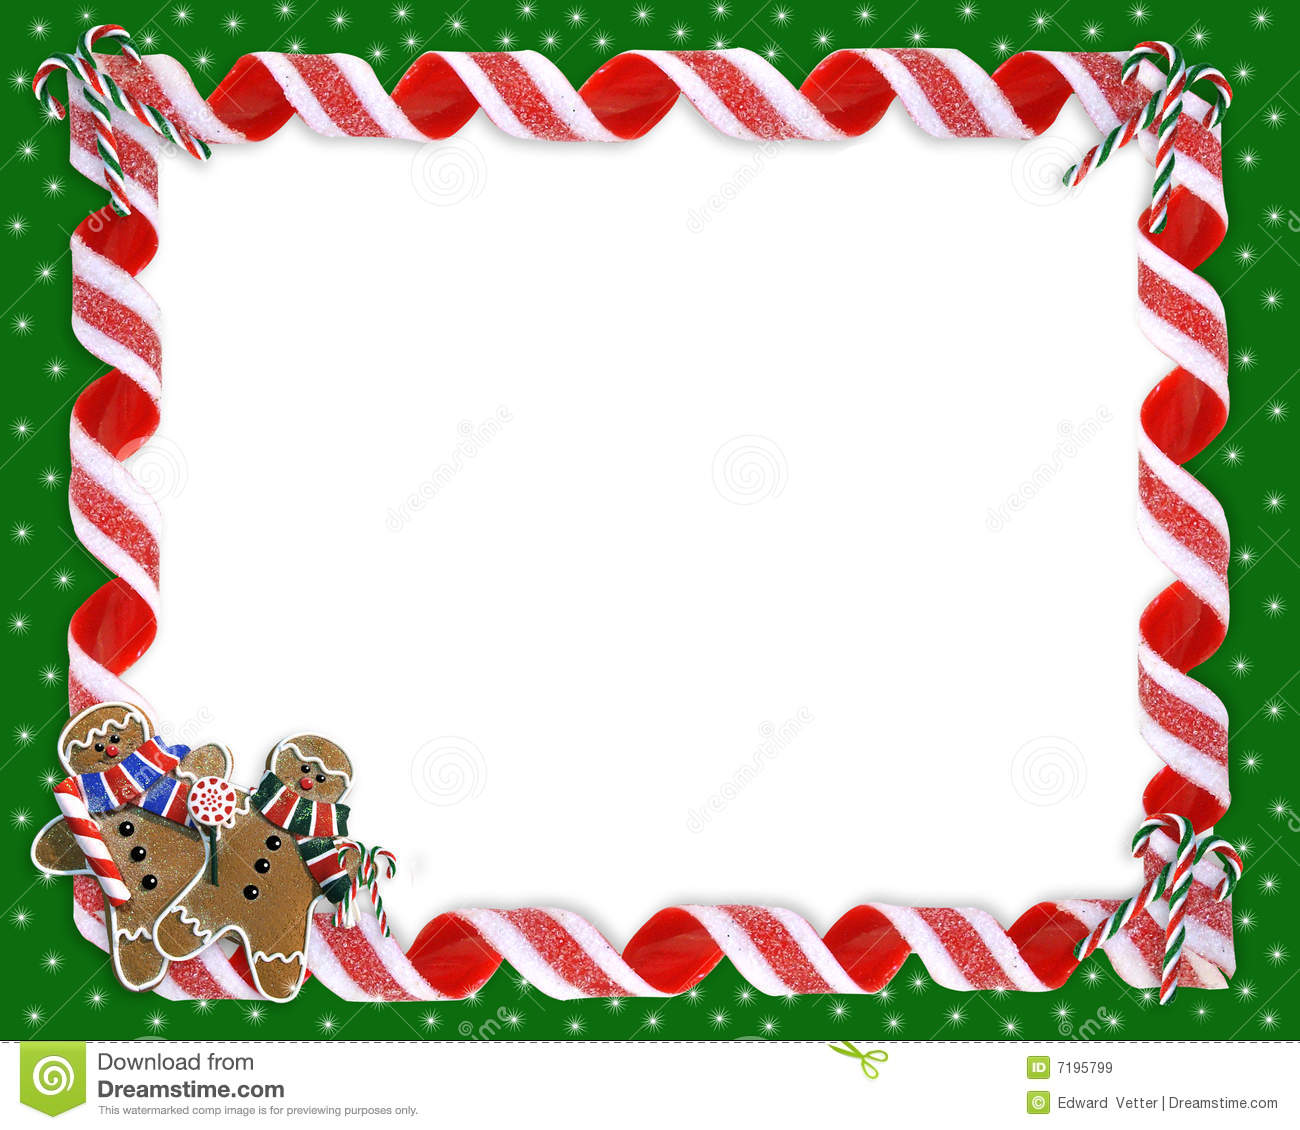 330 Christmas Cookies free clipart.